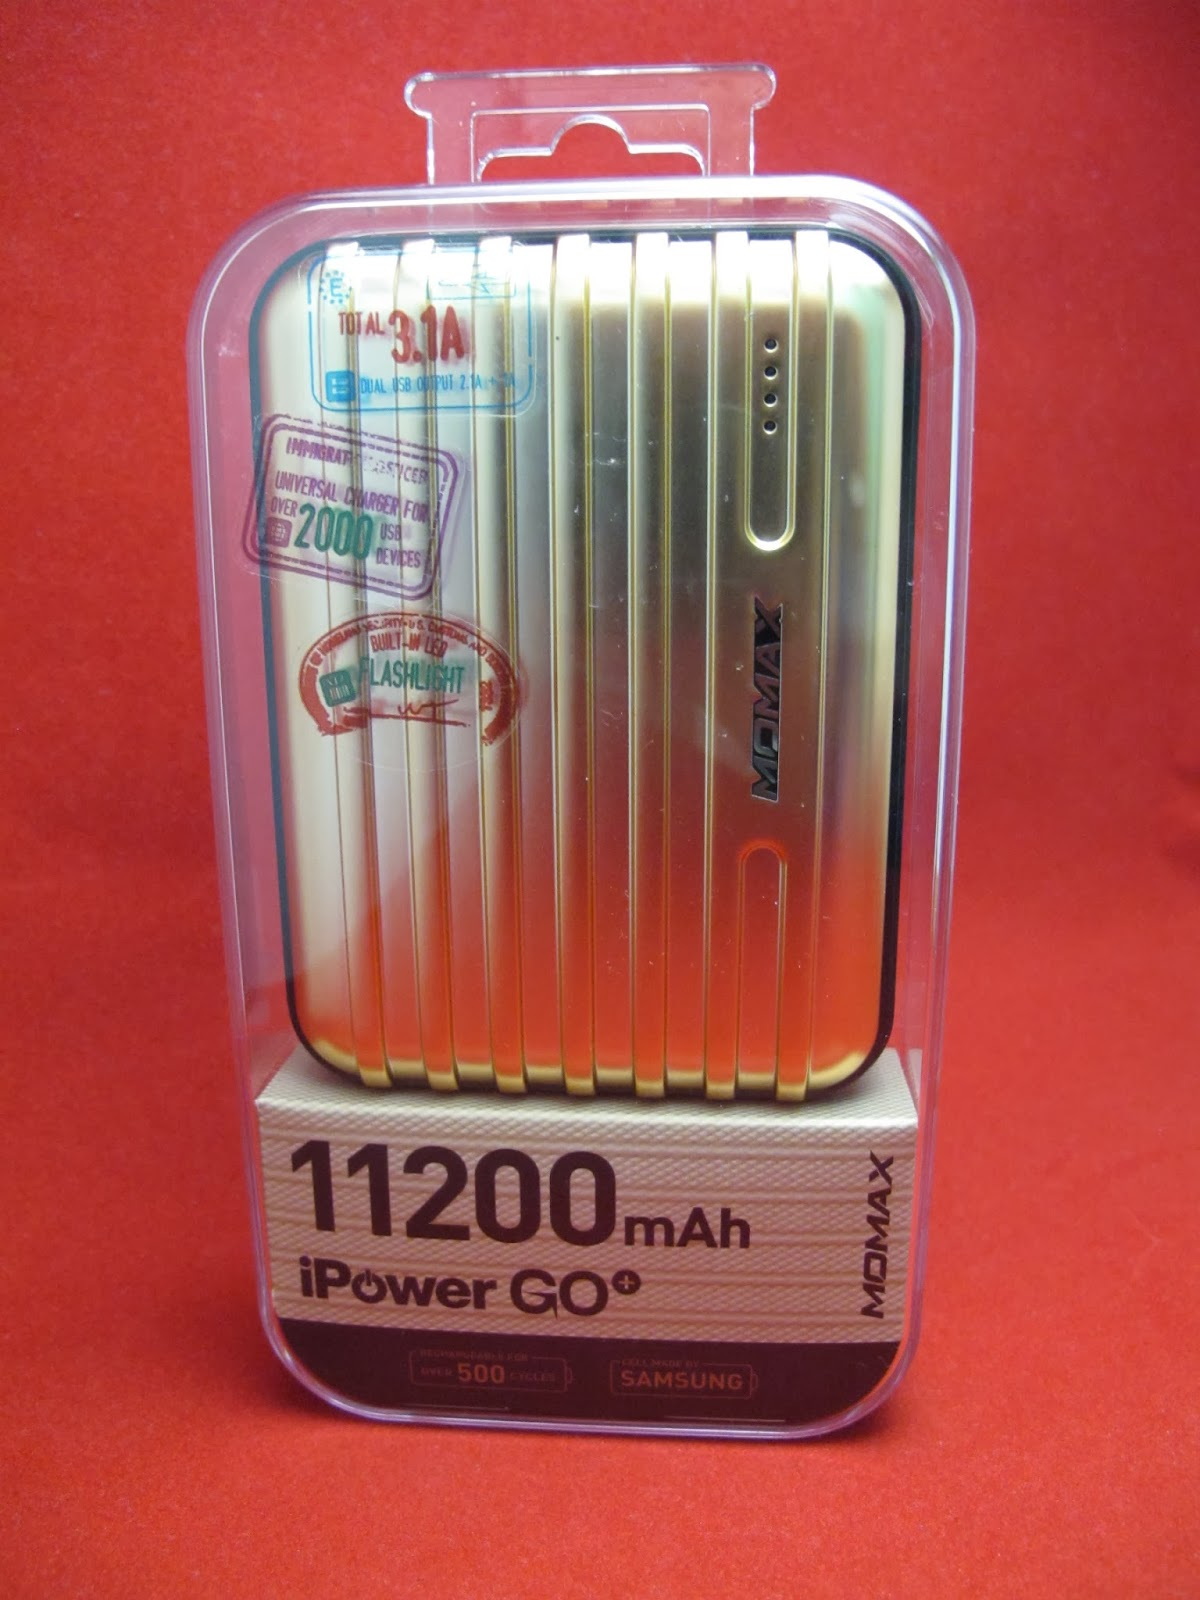 Avftl Momax Ipower Go Go Powerbank Is It A Gadget Or A Fashion